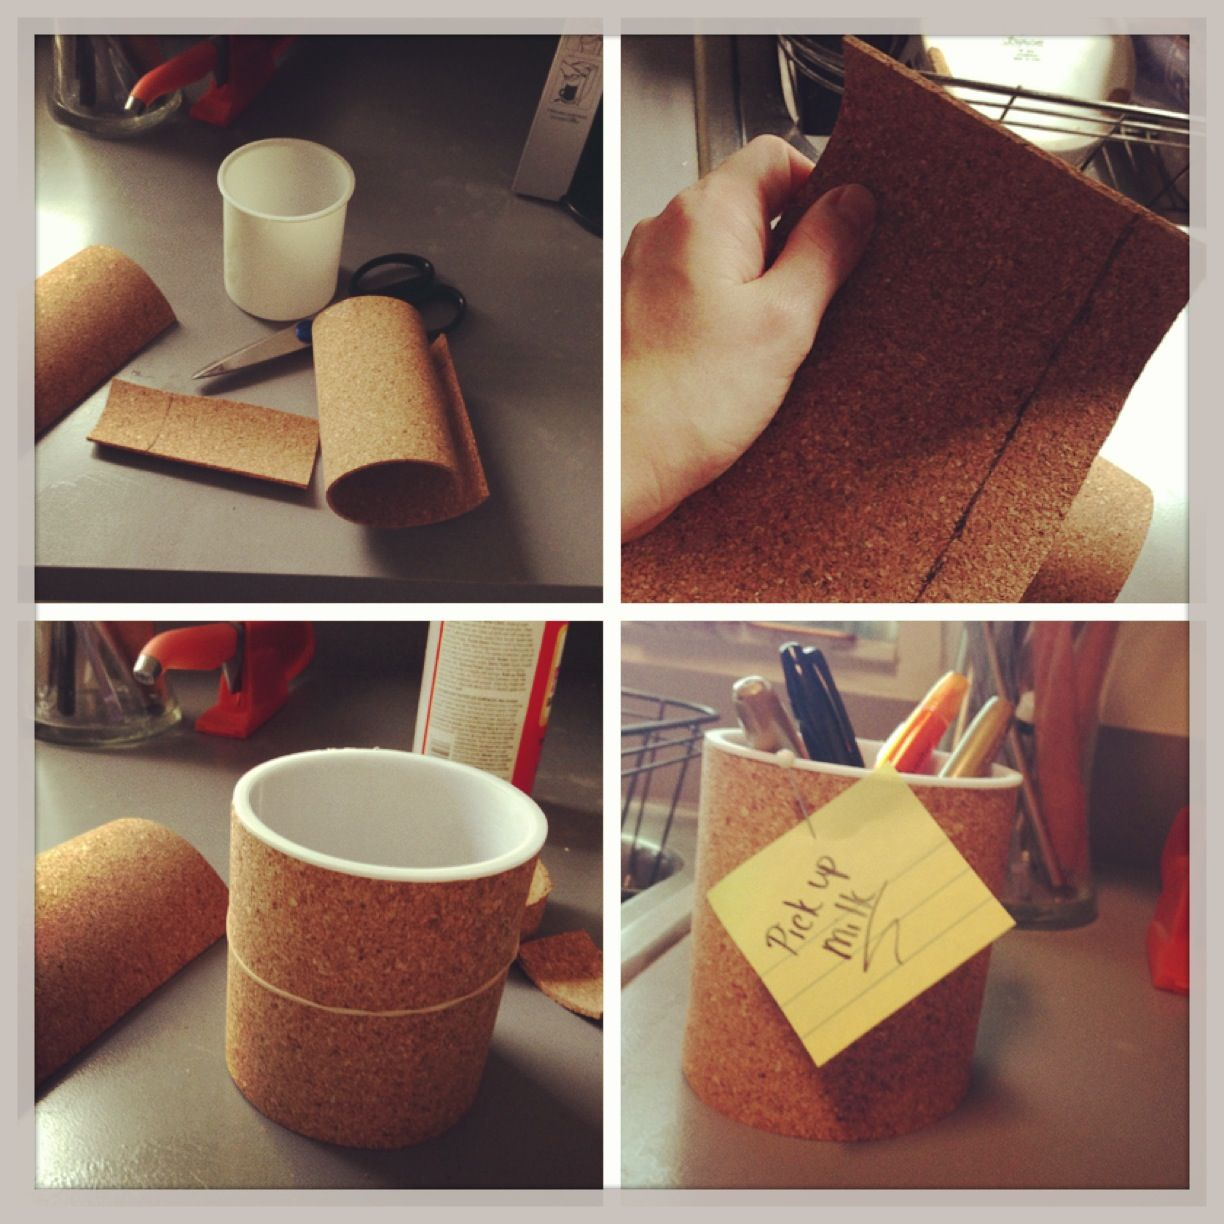 Easy Diy Pen Holder All You Need Is An Empty Frosting Container Oh Darn Or Can Piece Of Cork Found At Any Craft Crafts For Seniors Crafts Crafts For Kids